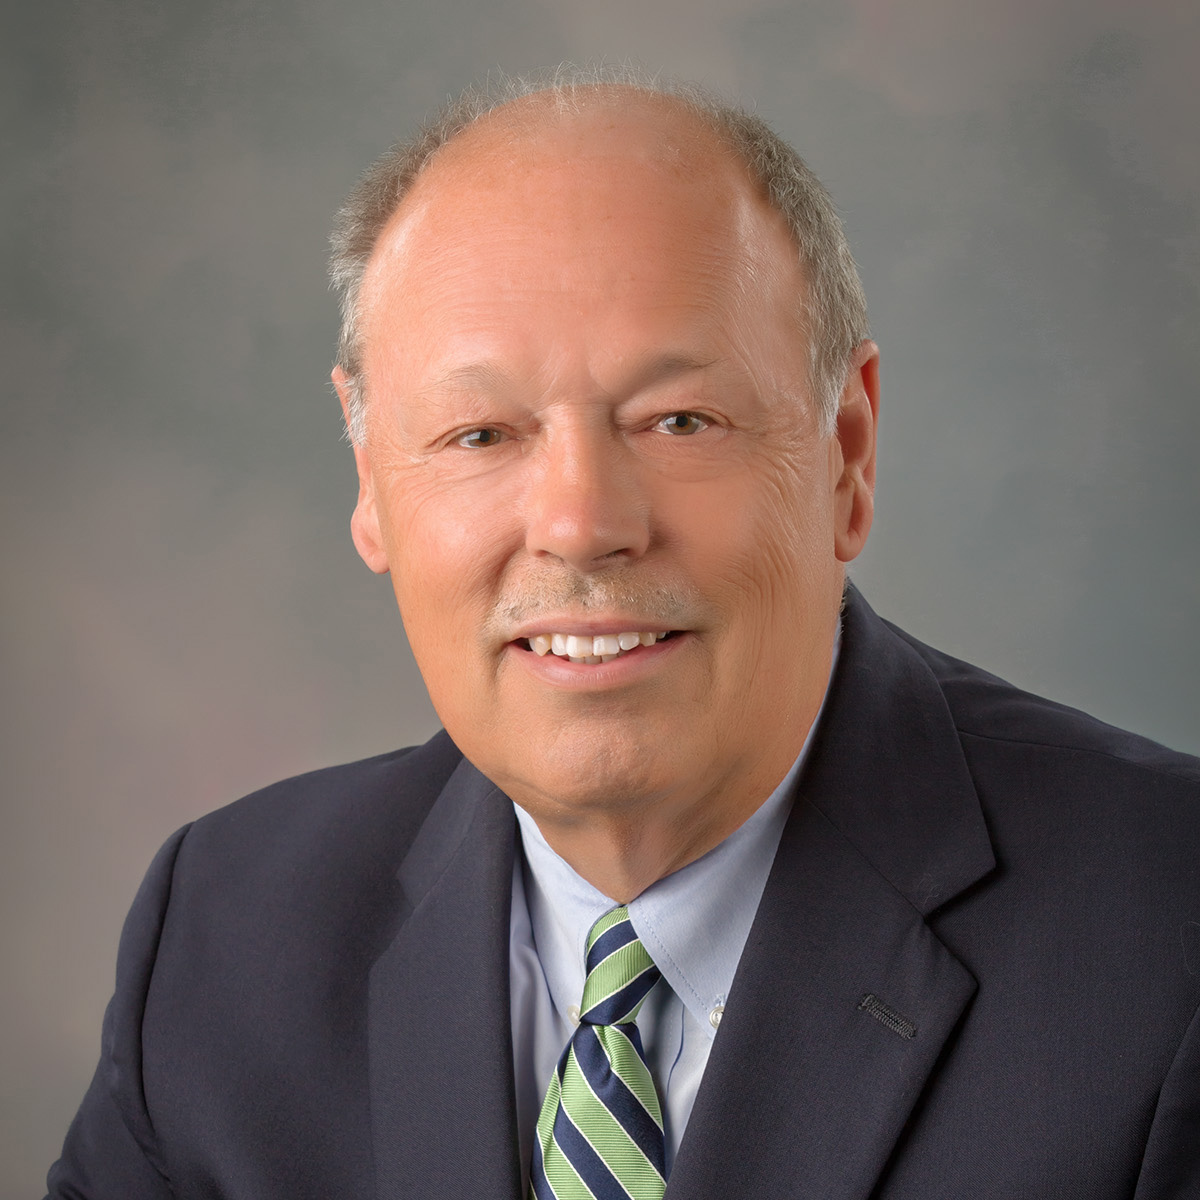 EDWARD E. BECK - Practice AreasPersonal Injury, Civil Litigation, Domestic Relations, Mediation